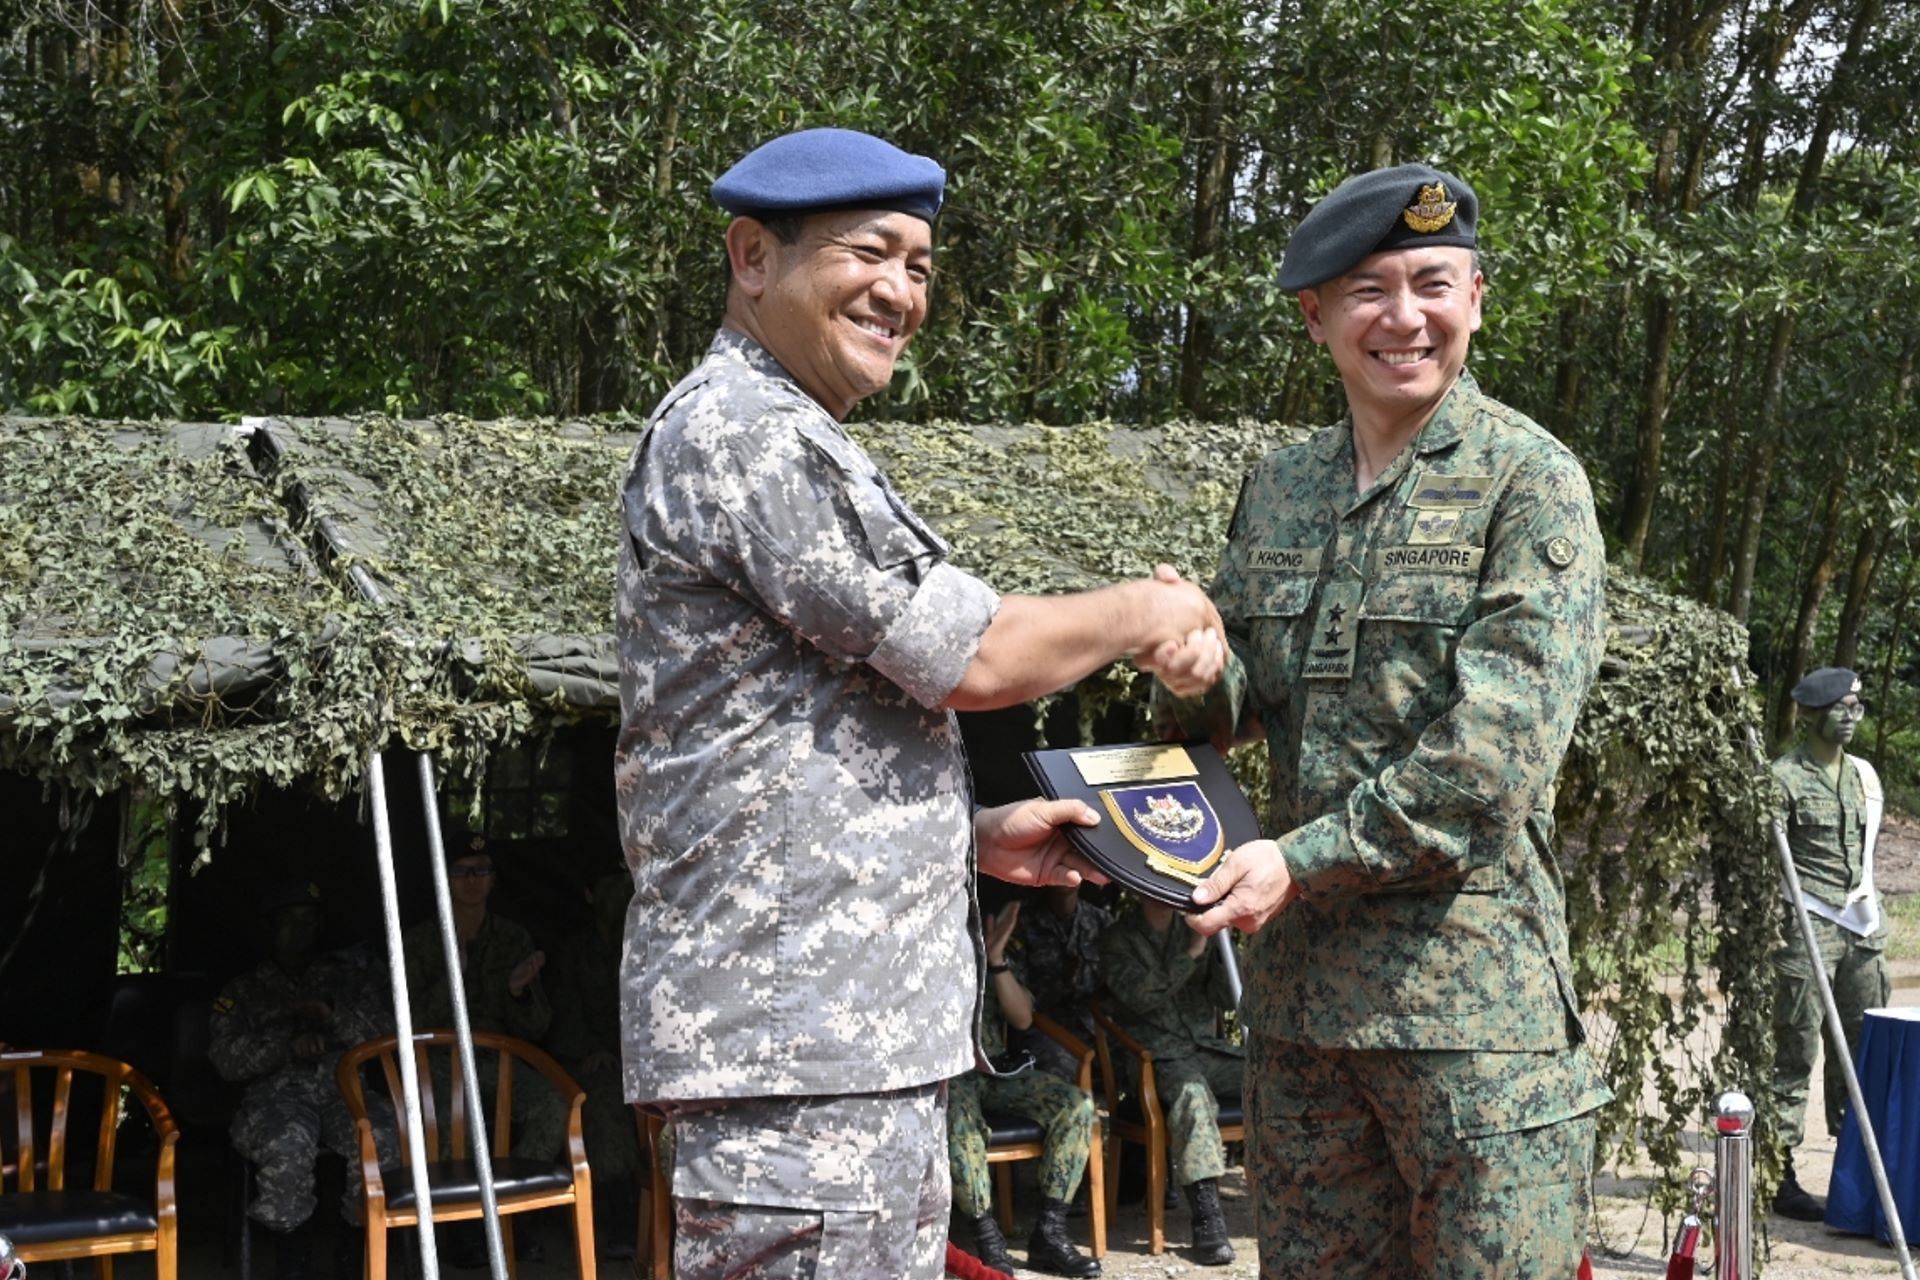 The RSAF Chief of Air Force, Major-General Kelvin Khong, and the Commander of the RBAirF, Brigadier-General (U) Dato Seri Pahlawan Haji Hamzah bin Haji Sahat.